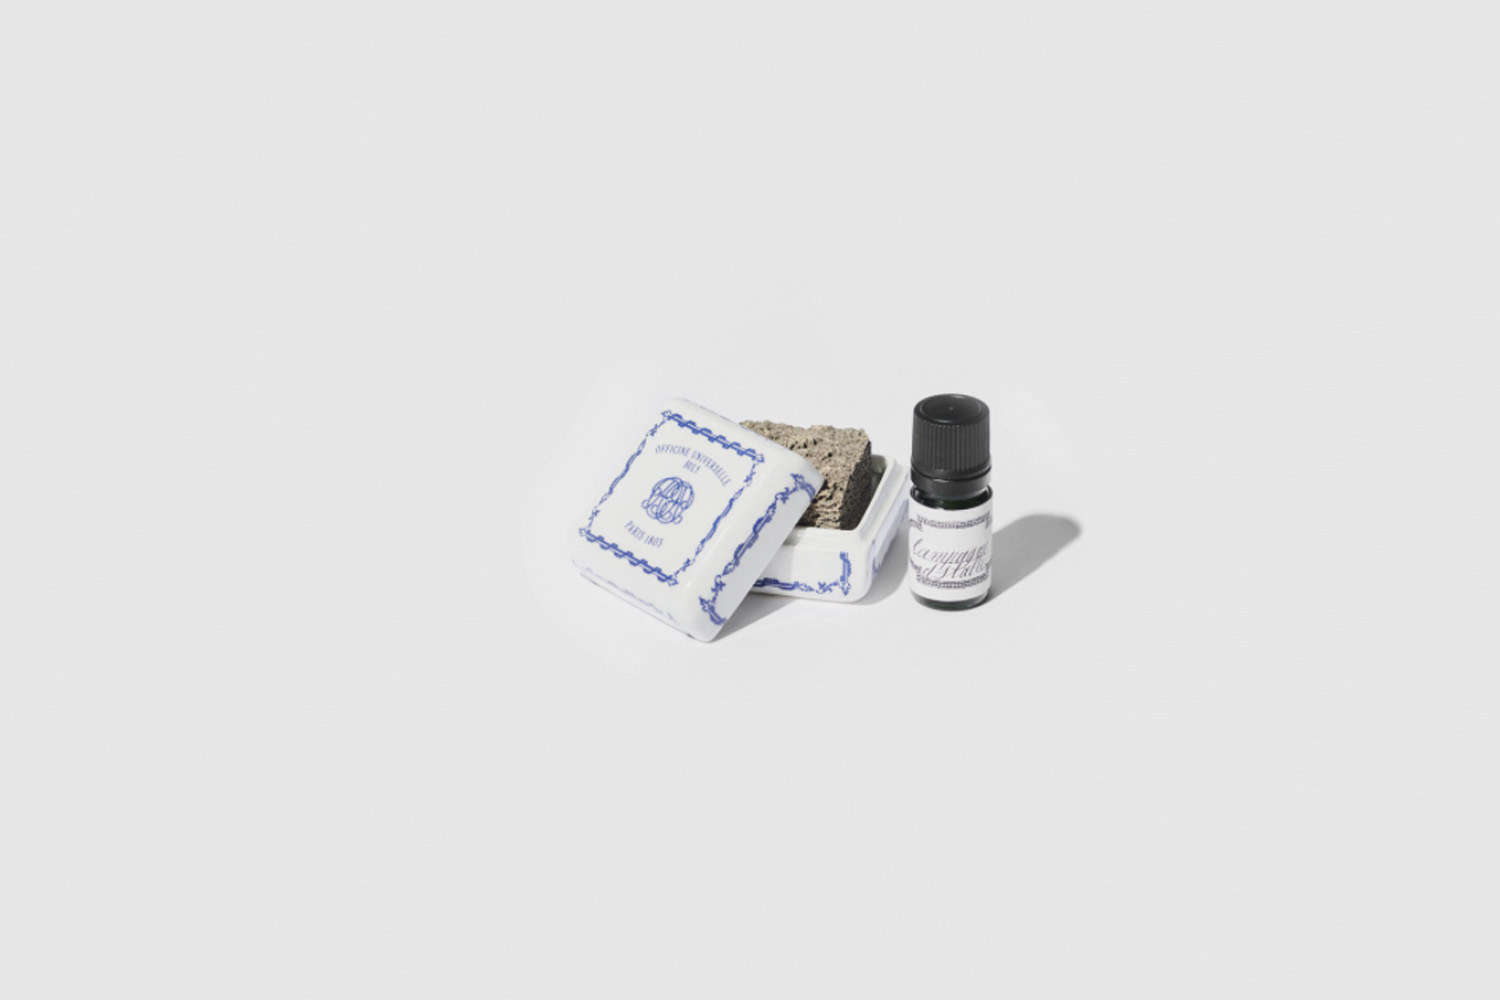 Remodelista Gift Guide 2020 Gifts for the Home Fragrance Snob Parisian apothecary Officine Buly makes a line of scented oil designed to drip onto a sedimentary stone housed in a porcelain box. Designed to diffuse fragrance in a heatless and steam free format, the Alabaster Campagne d&#8\2\17;Italie, is one of many scents to be placed in cupboards, wardrobes, bathrooms, and cars; €54.\17 at Officine Universelle Buly à Paris.